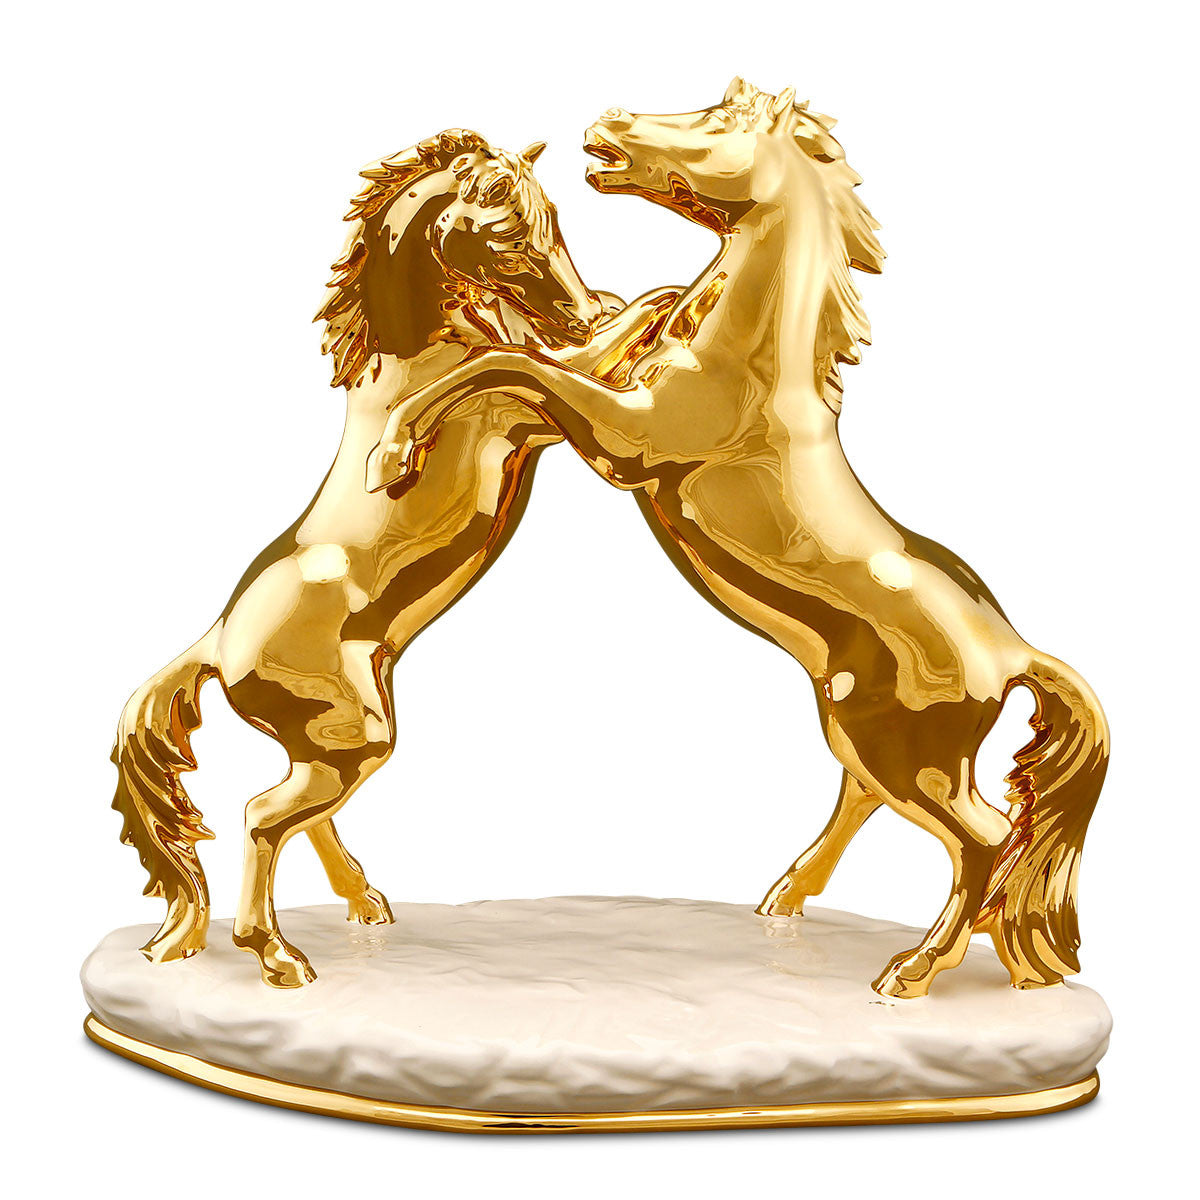 Ceramic horse fighting statue with gold finish